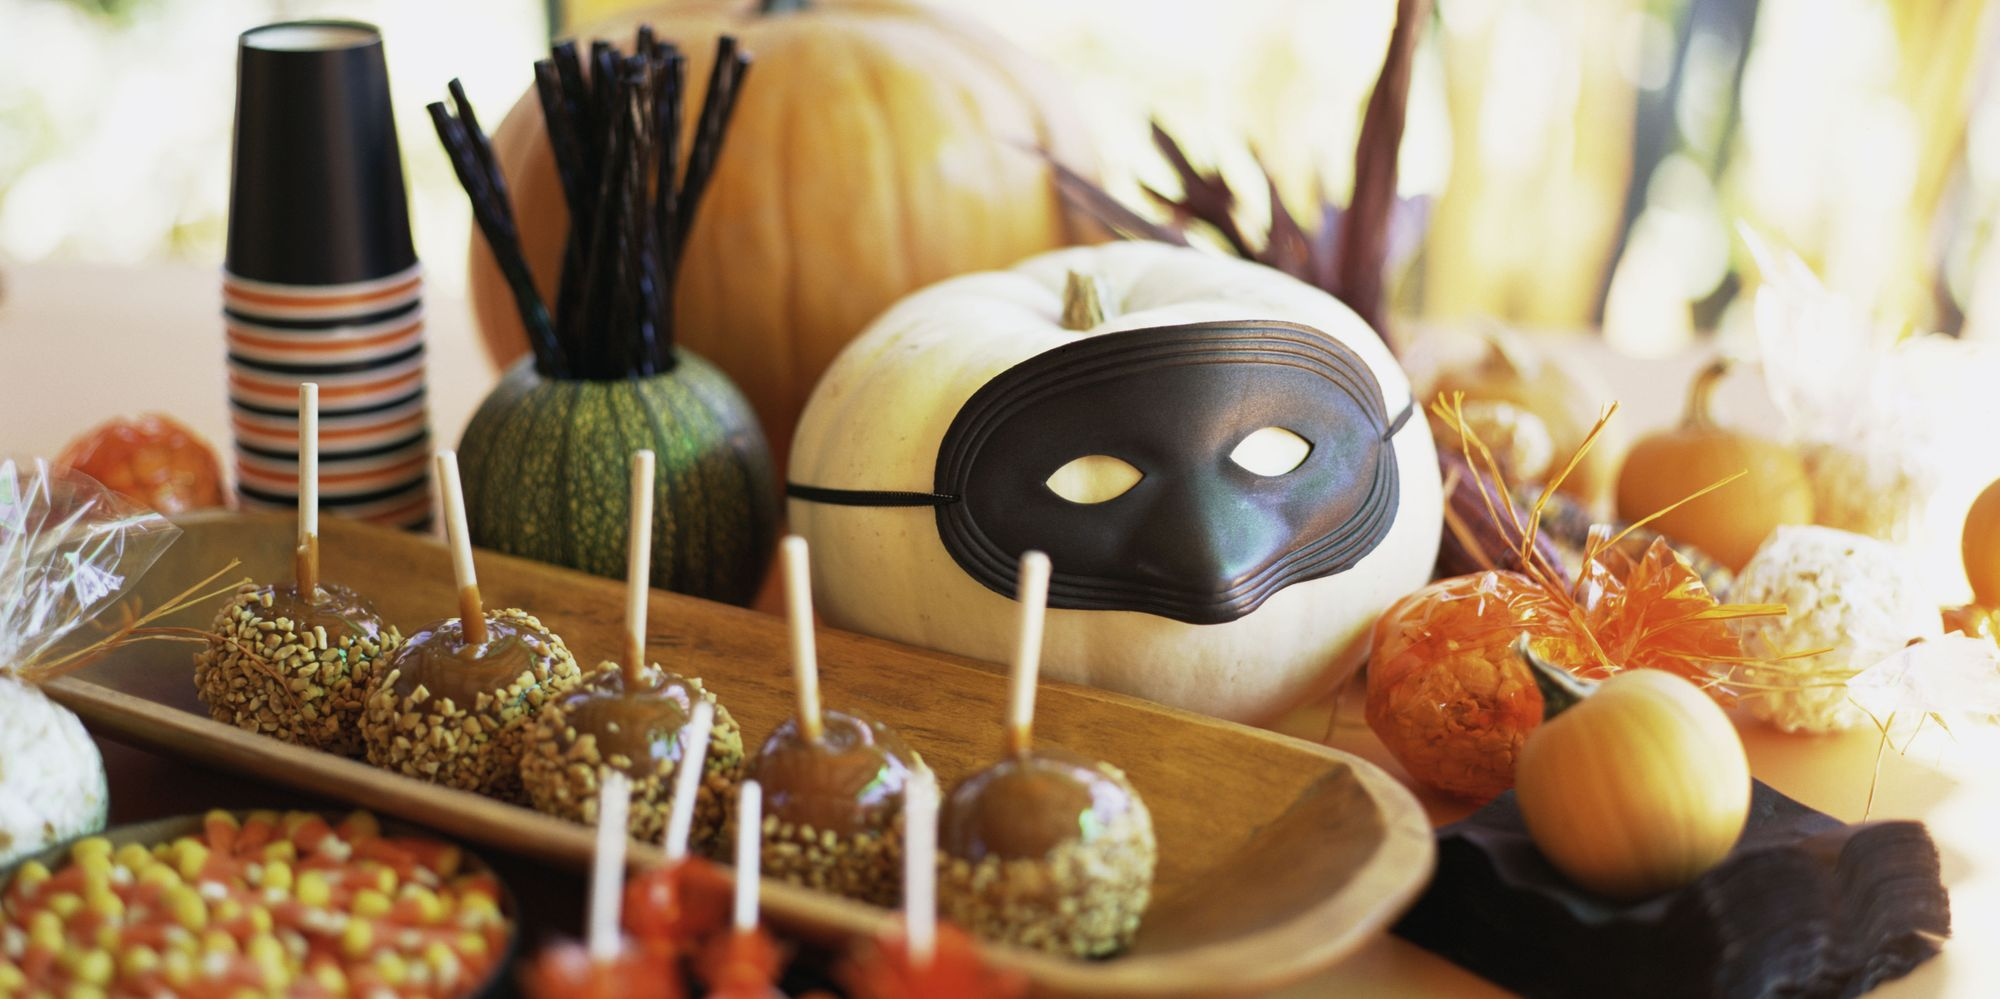 13 Non-Cheesy Yet Adorable Halloween Decorations For Your Home  The ...